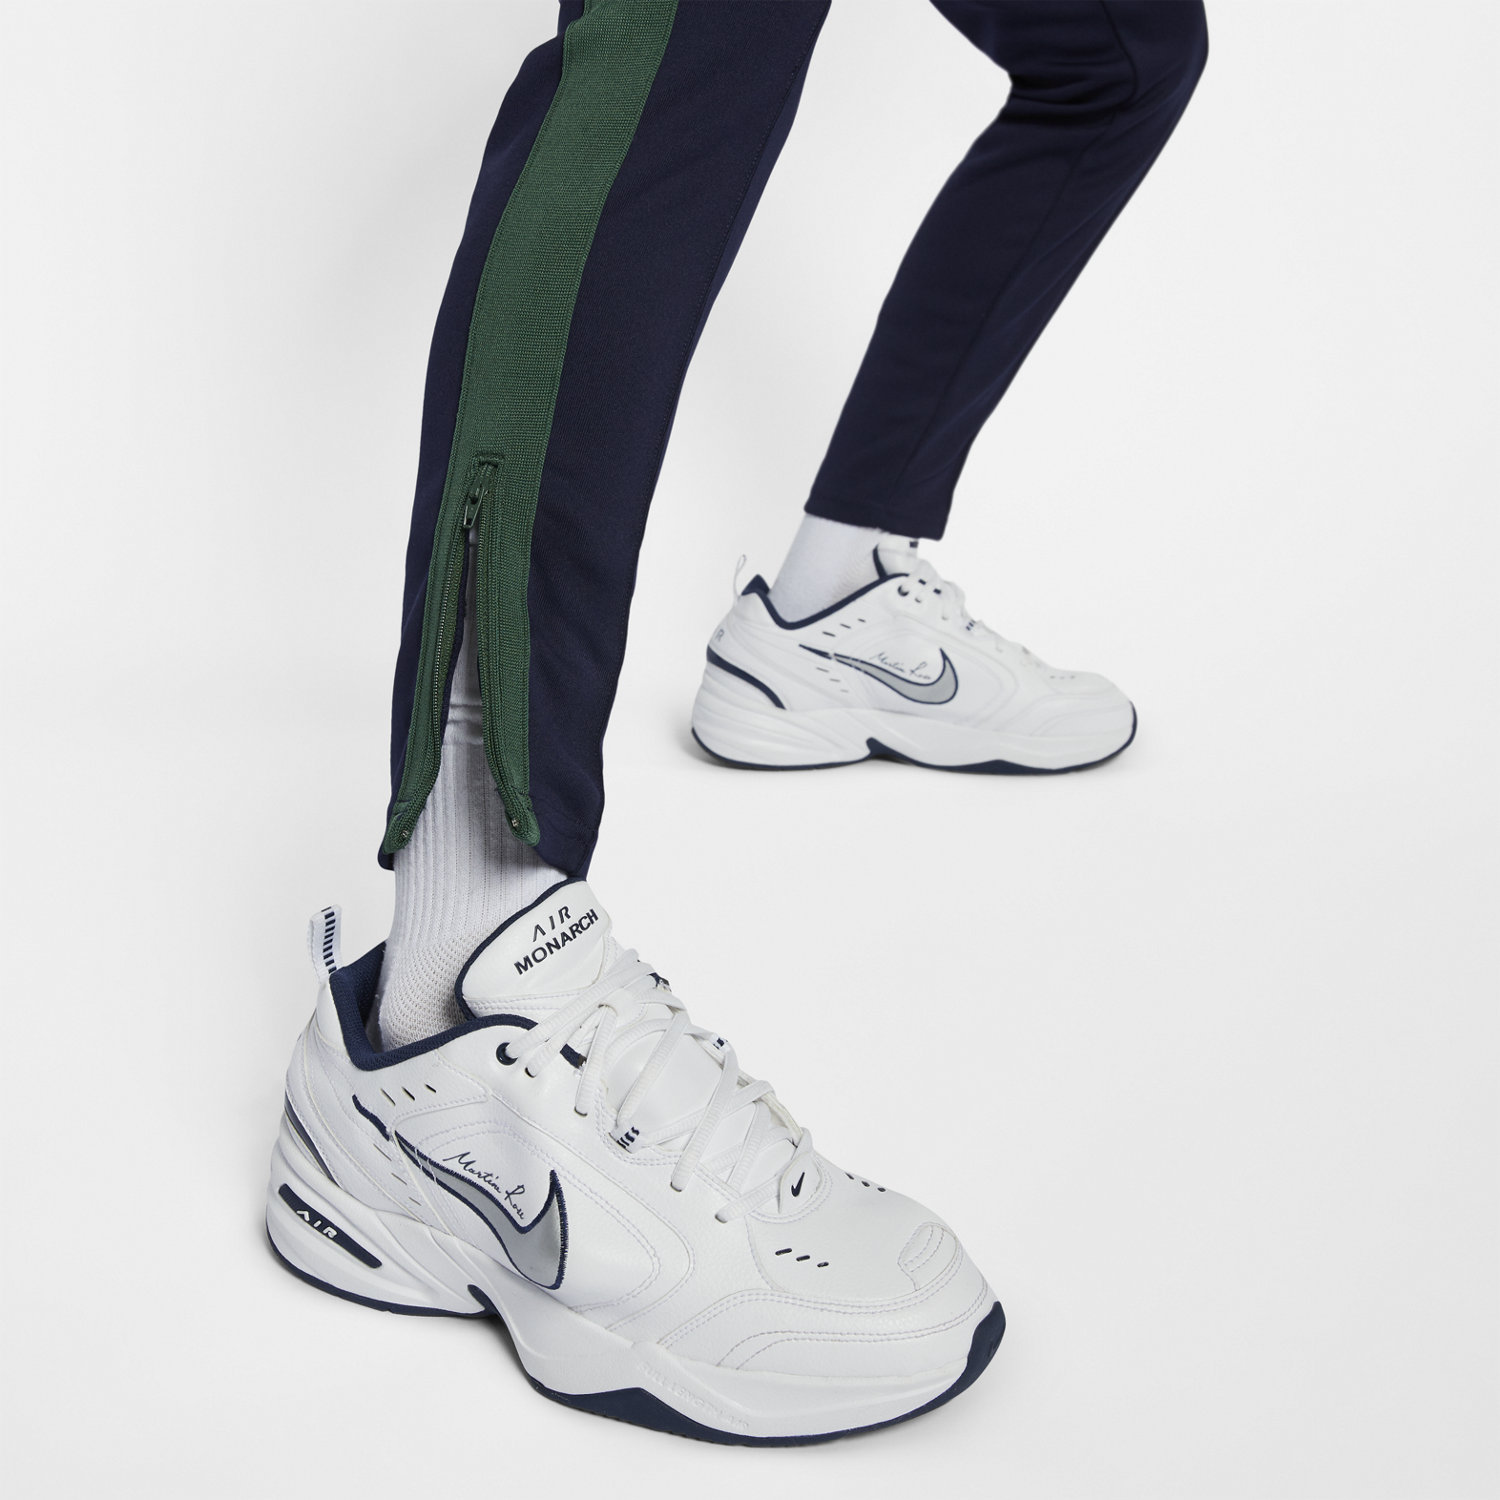 7425c768147b Nike x Martine Rose Tracksuit Bottoms. Nike.com UK